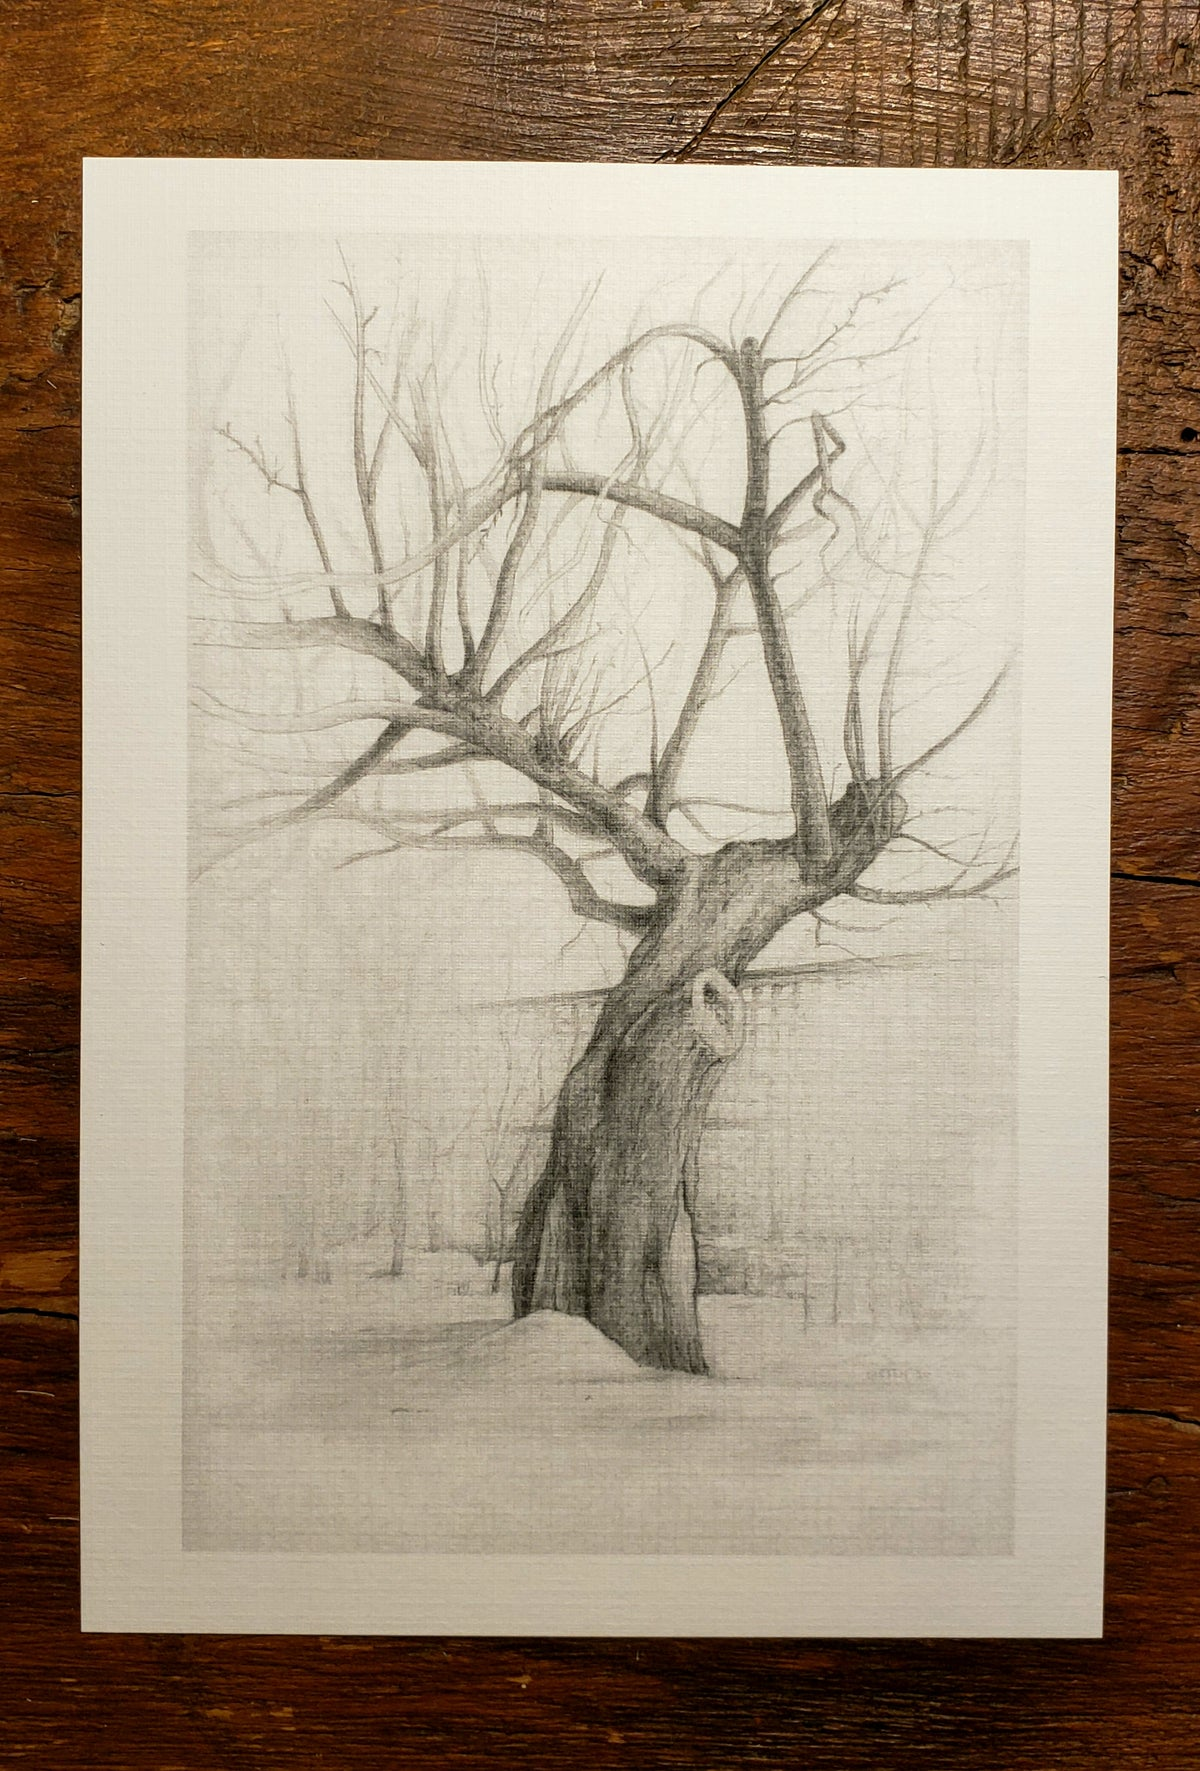 Image of Study of an Old Apple Tree - print of original pencil drawing